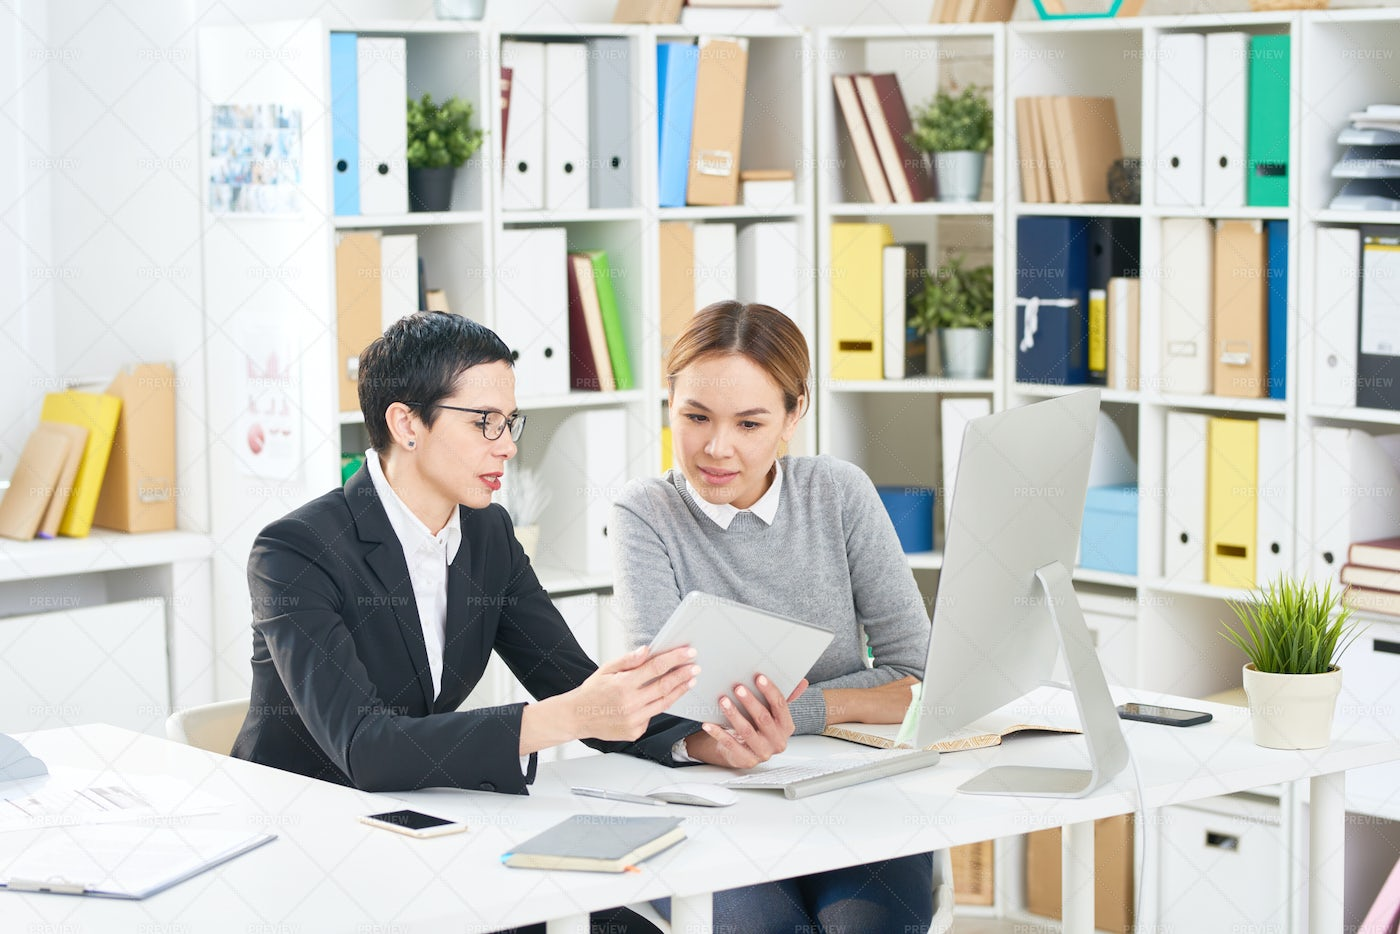 Interior Designers Wrapped Up In...: Stock Photos